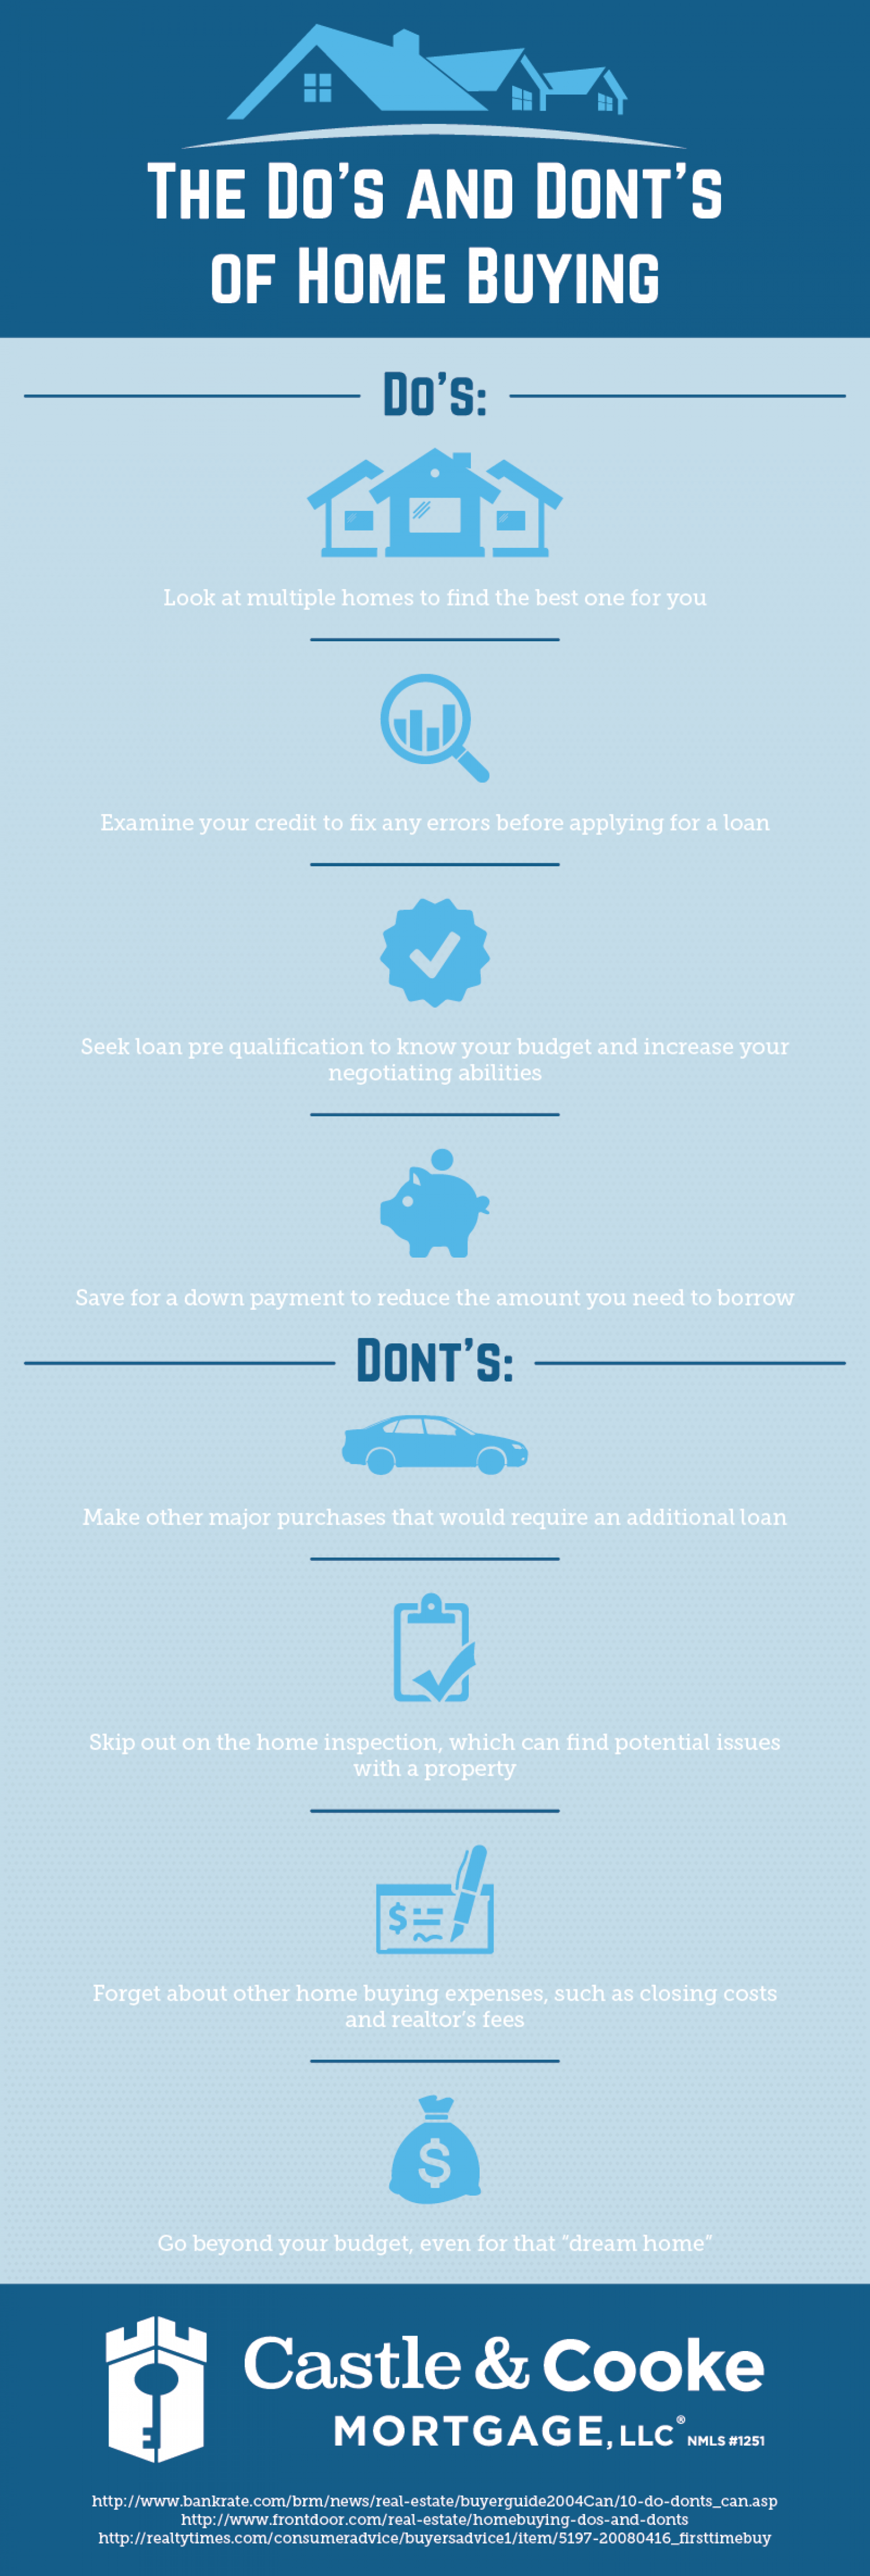 The Do's and Dont's of Home-Buying Infographic